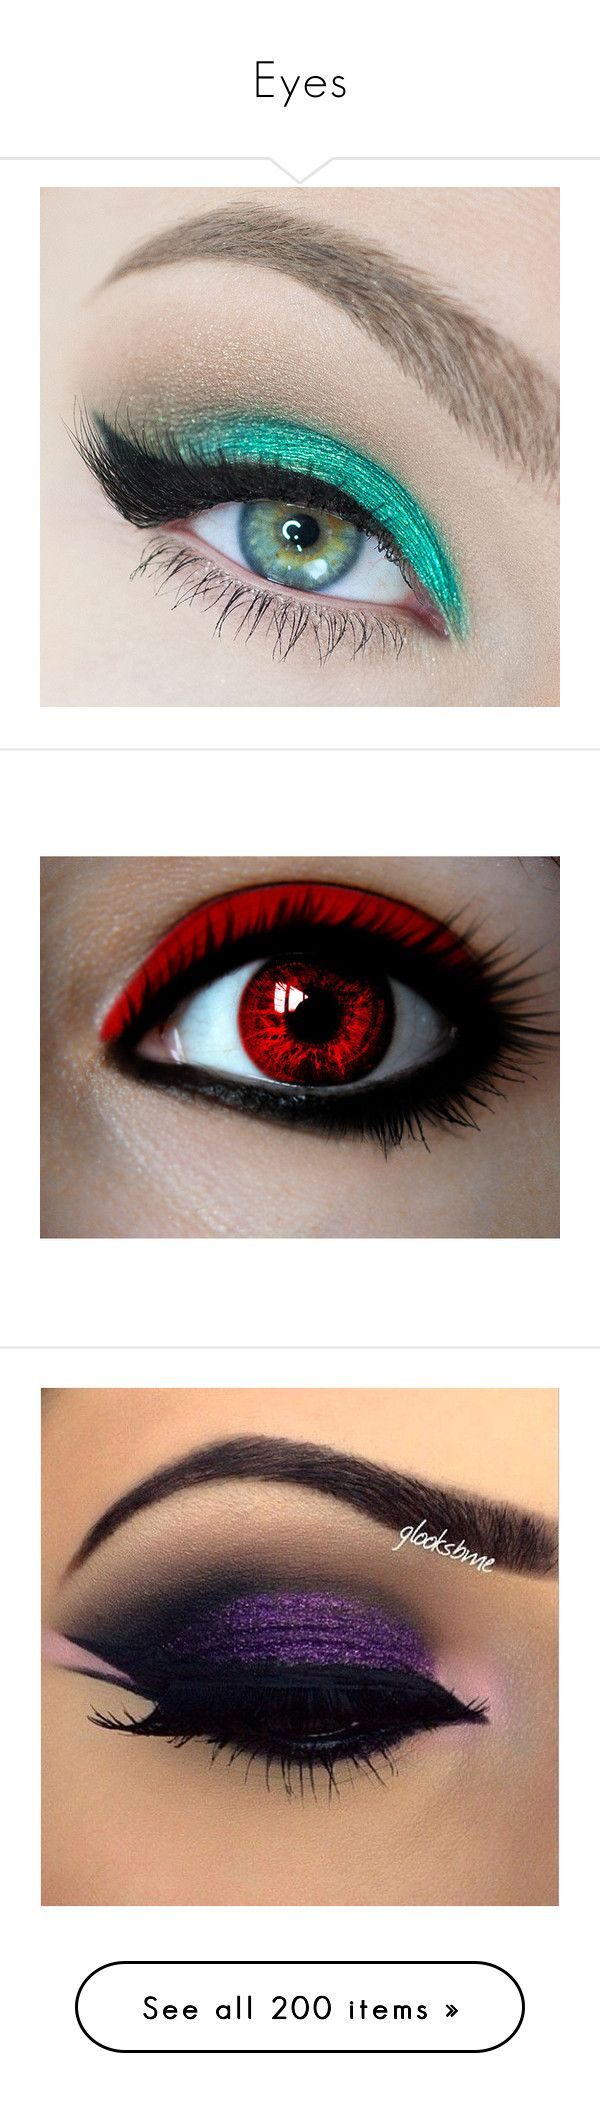 """""""Eyes"""" by emo-kyleigh ❤ liked on Polyvore featuring beauty products, makeup, eye makeup, eyeshadow, eyes, beauty, contacts, eye brow makeup, brow makeup and eyebrow cosmetics"""